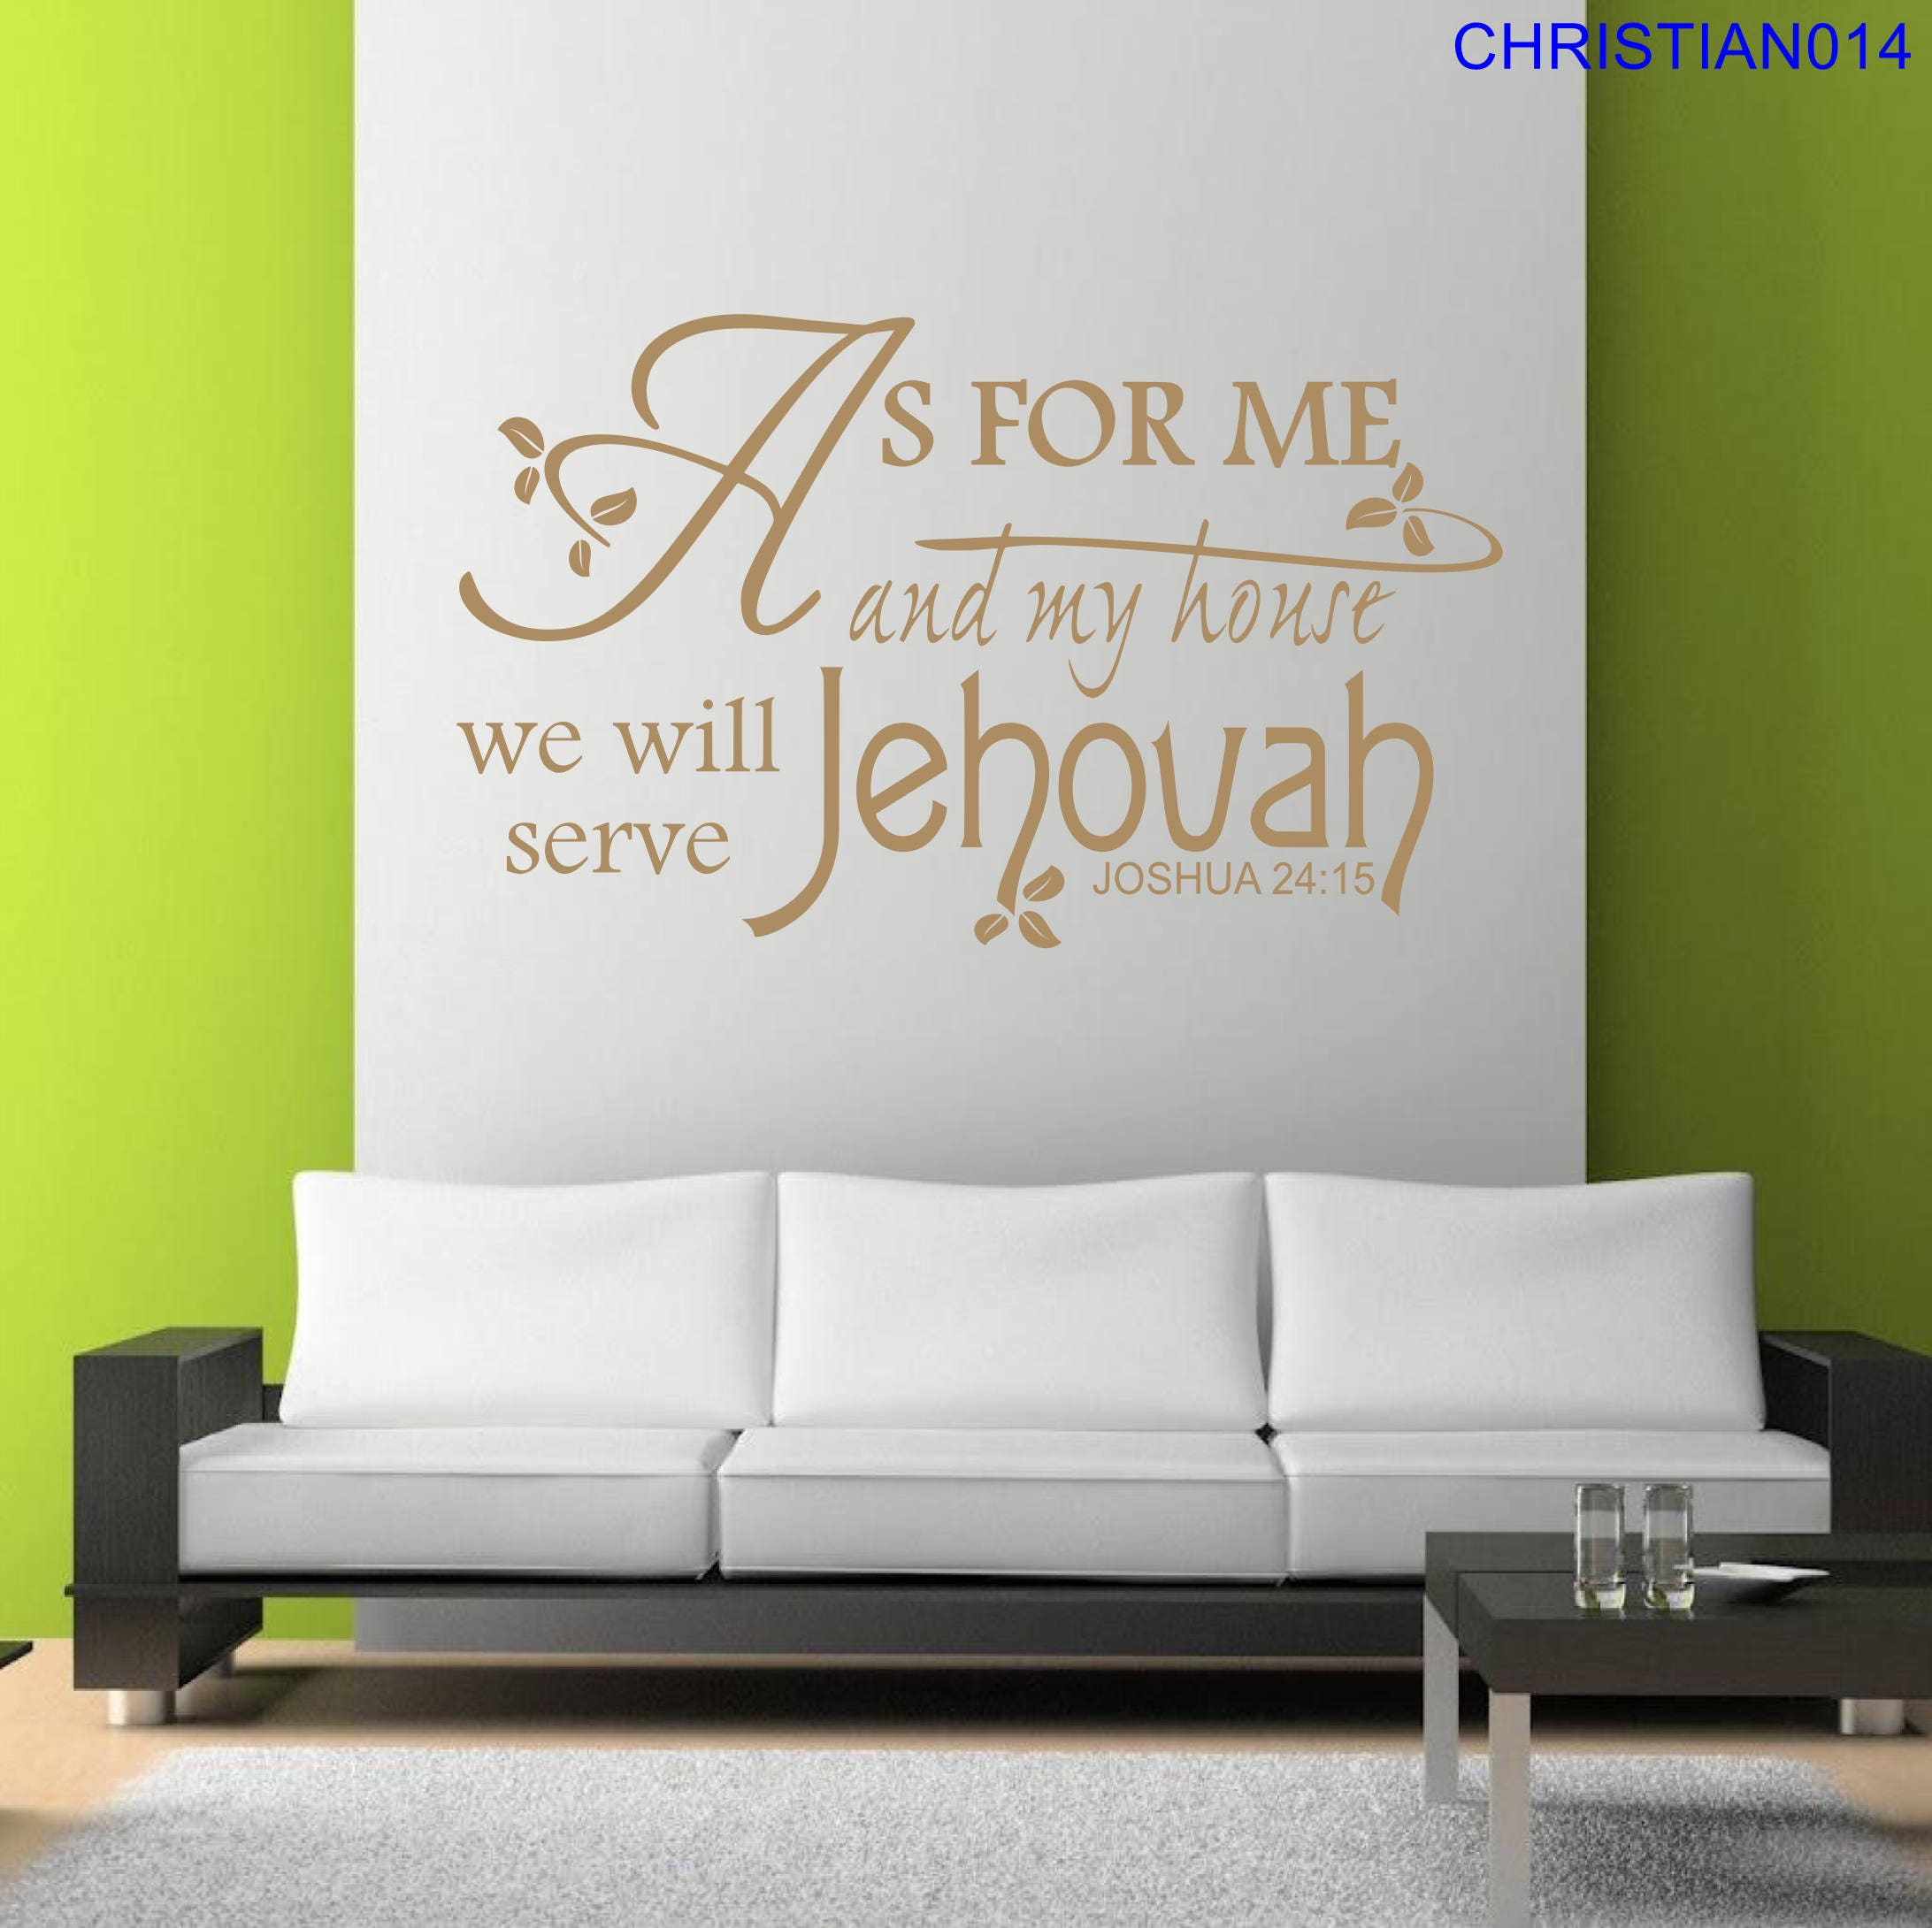 As For Me And My House We Will Serve Jehovah Joshua 24:15 Vinyl Wall